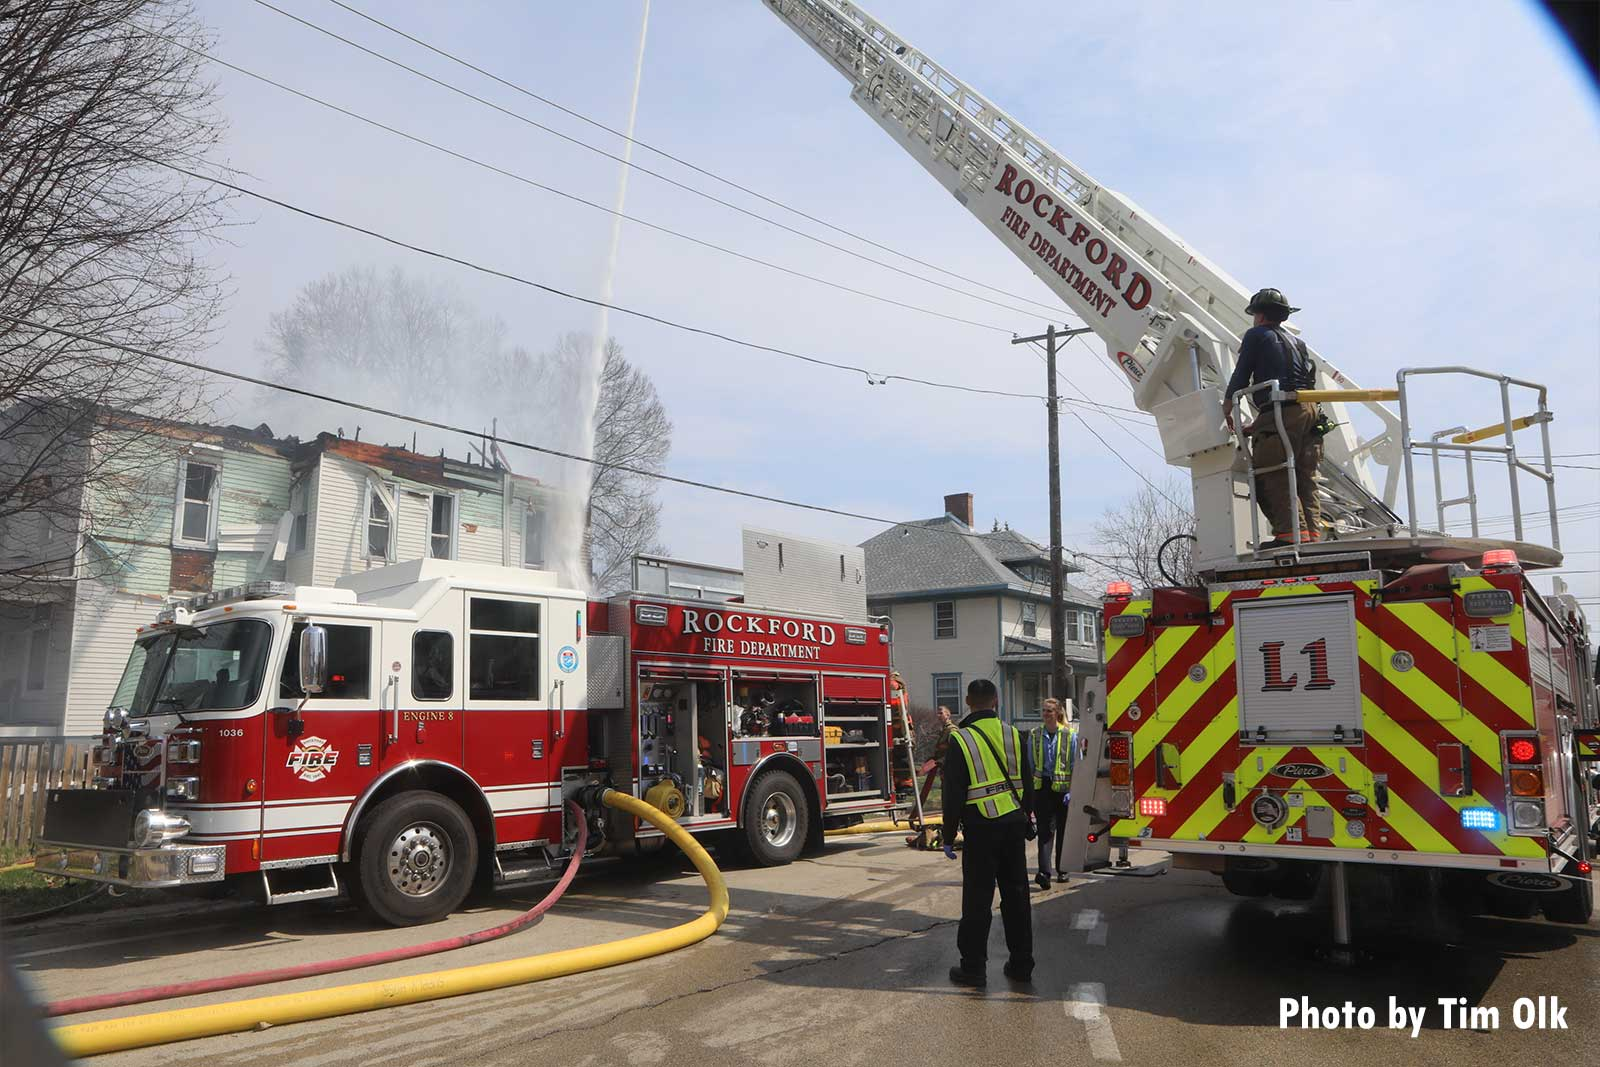 Two fire trucks at the scene of an apartment fire in Rockford